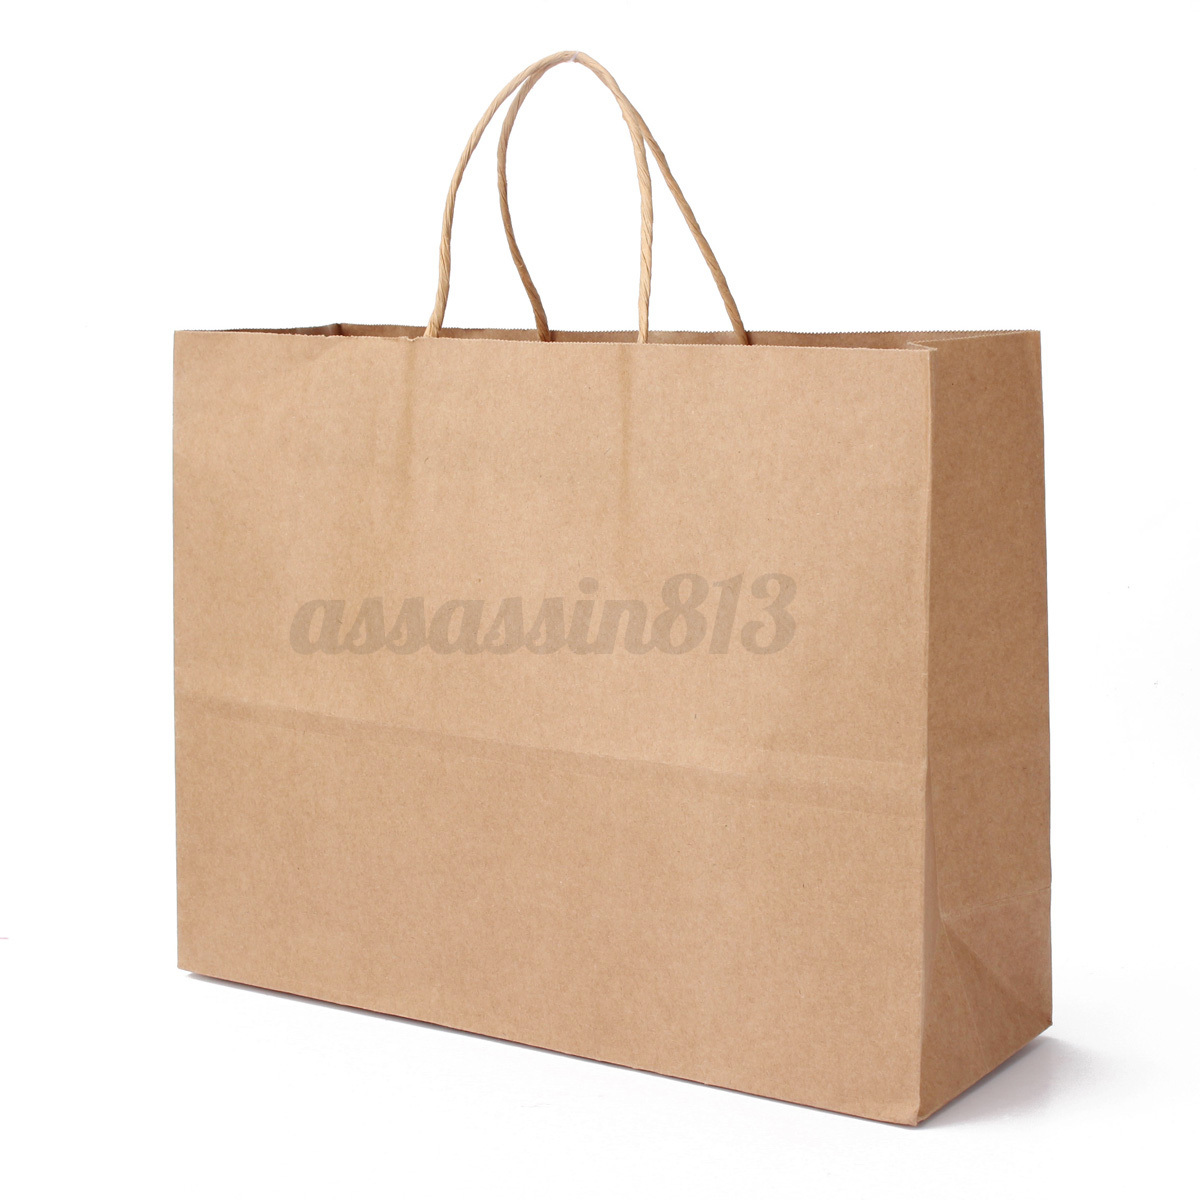 Small paper shopping bags with handles